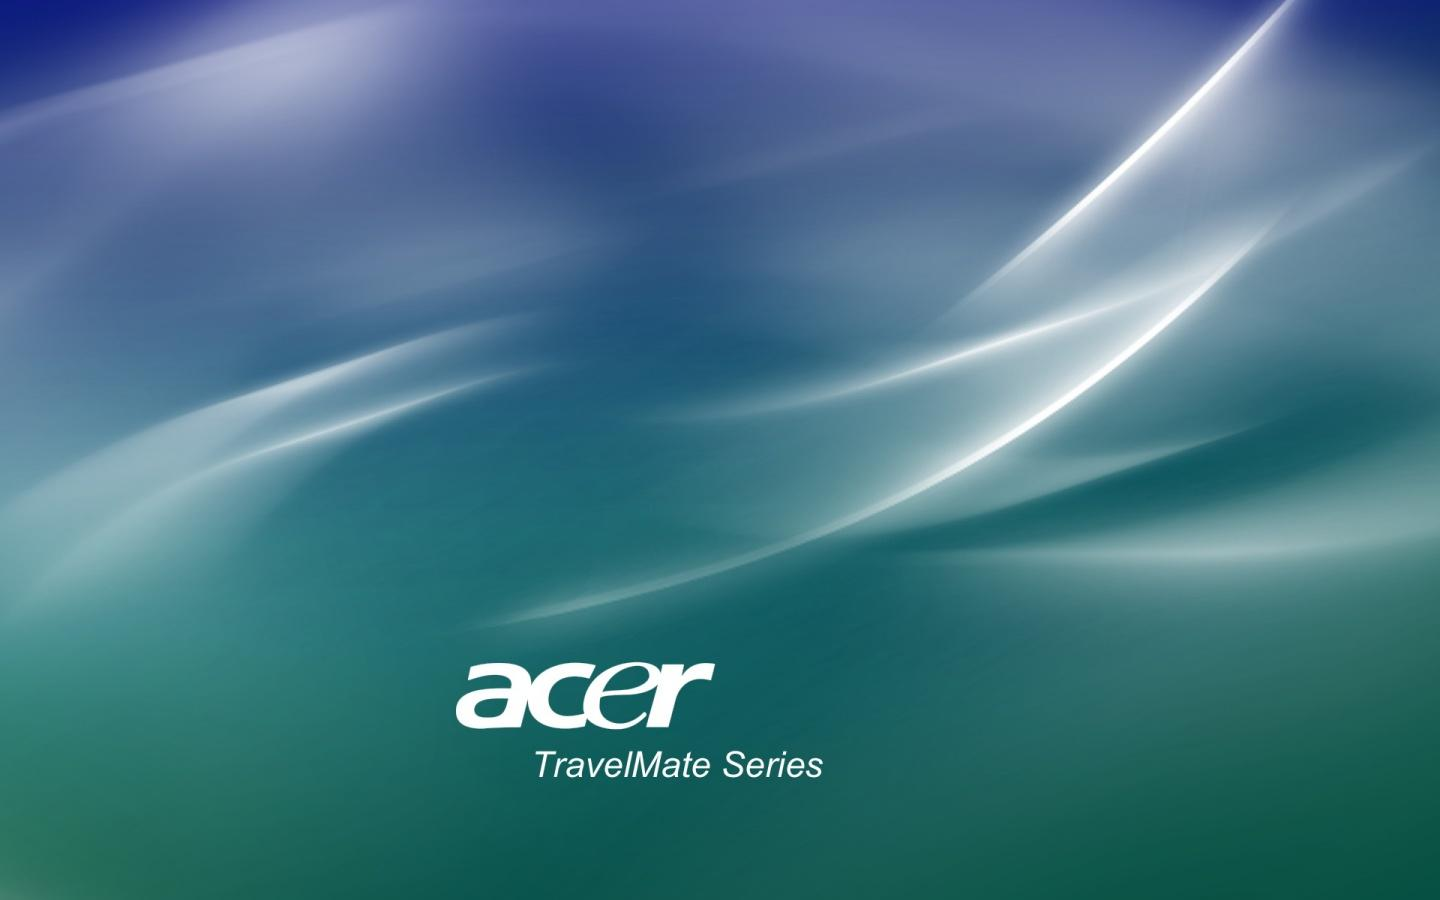 Acer Abstract (1440x900)